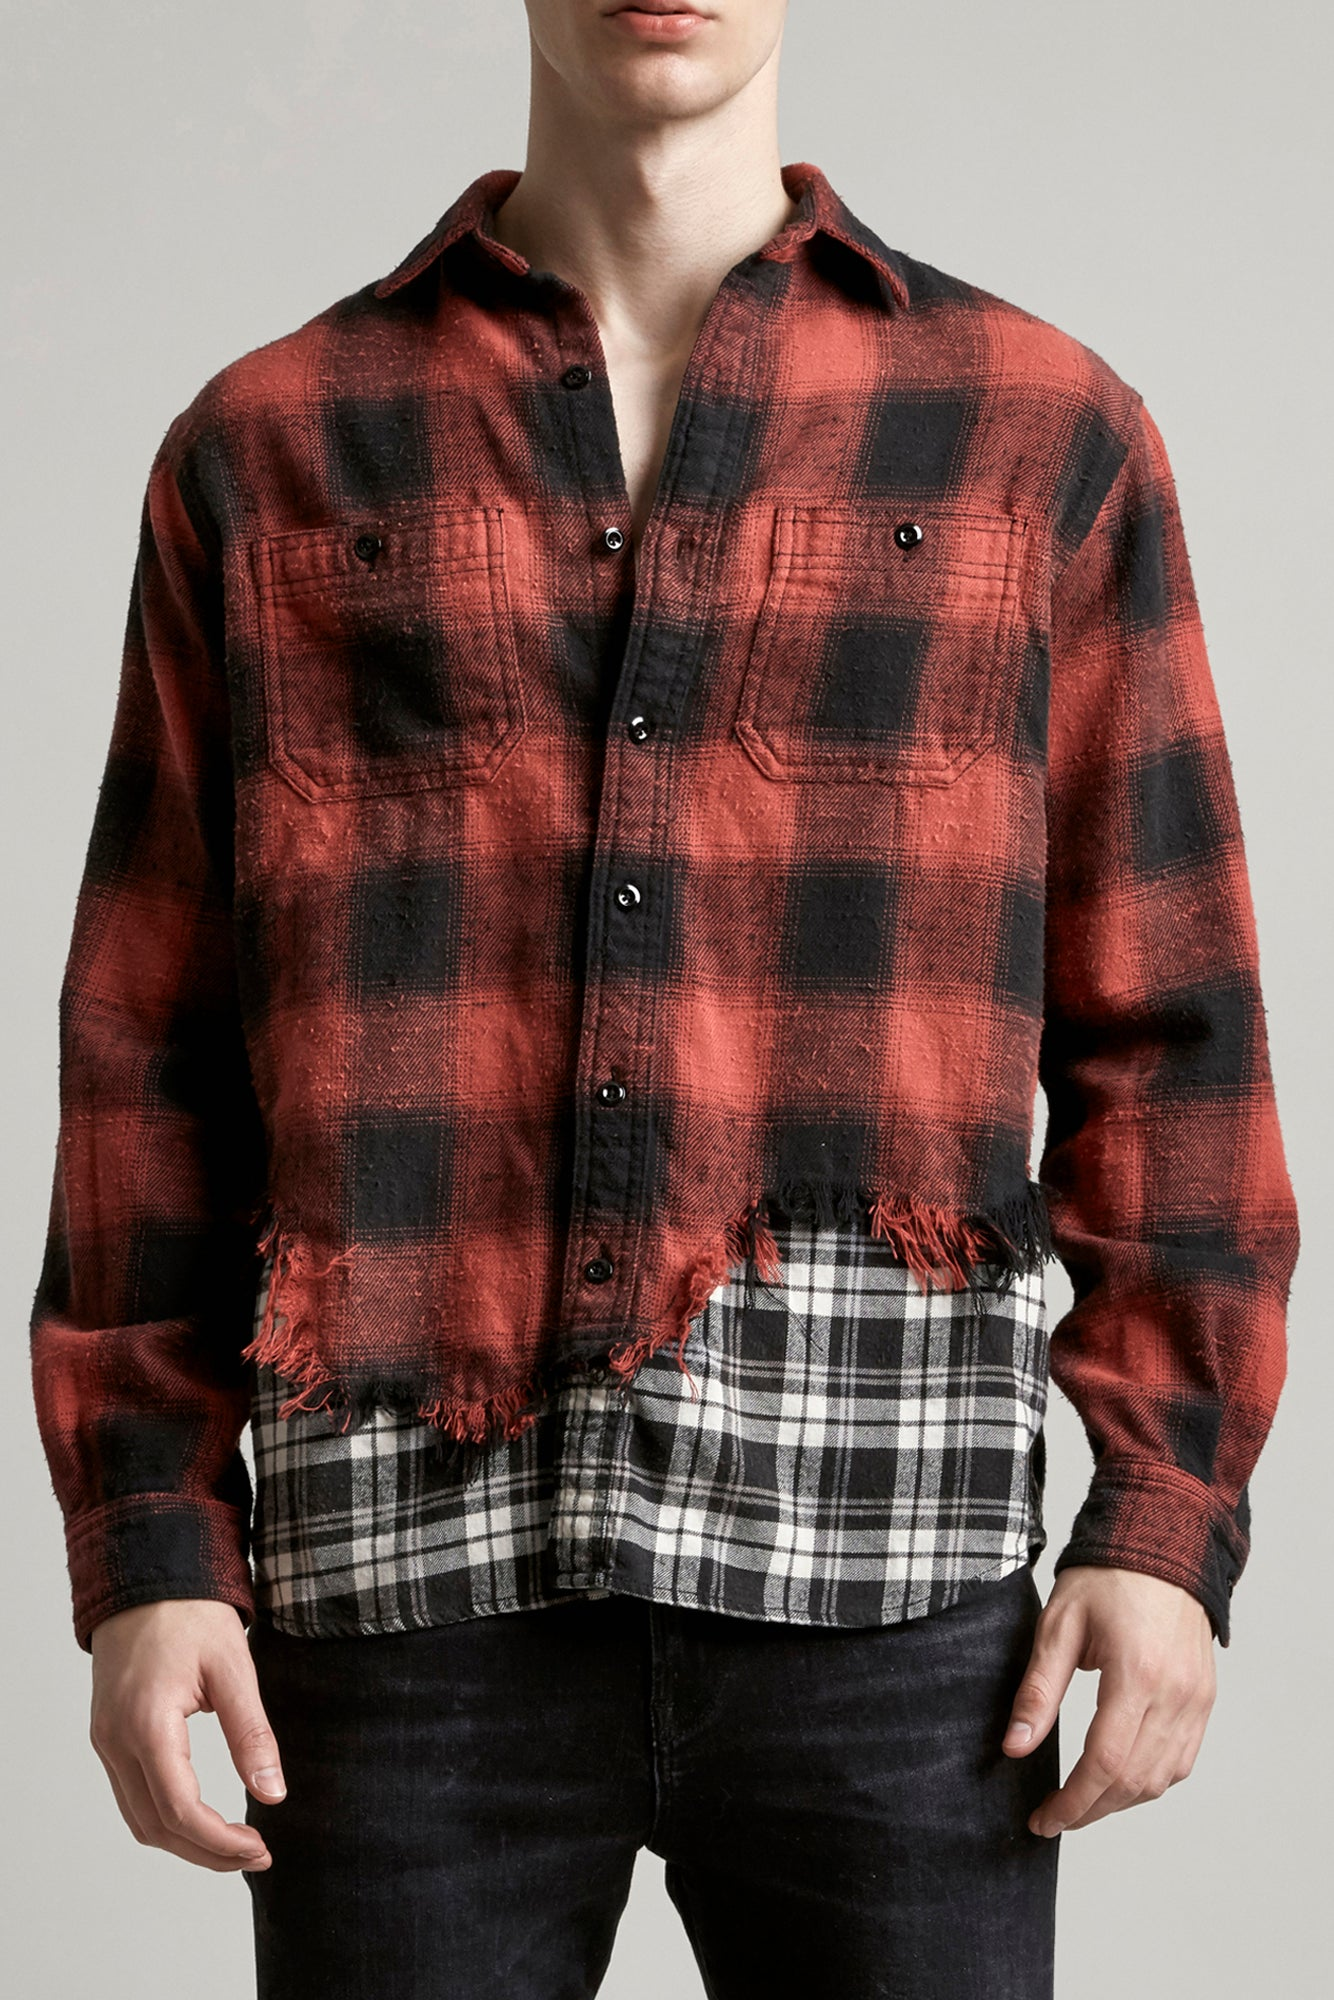 R13 classic button shirt with shredded double hem in red, black and white tartan